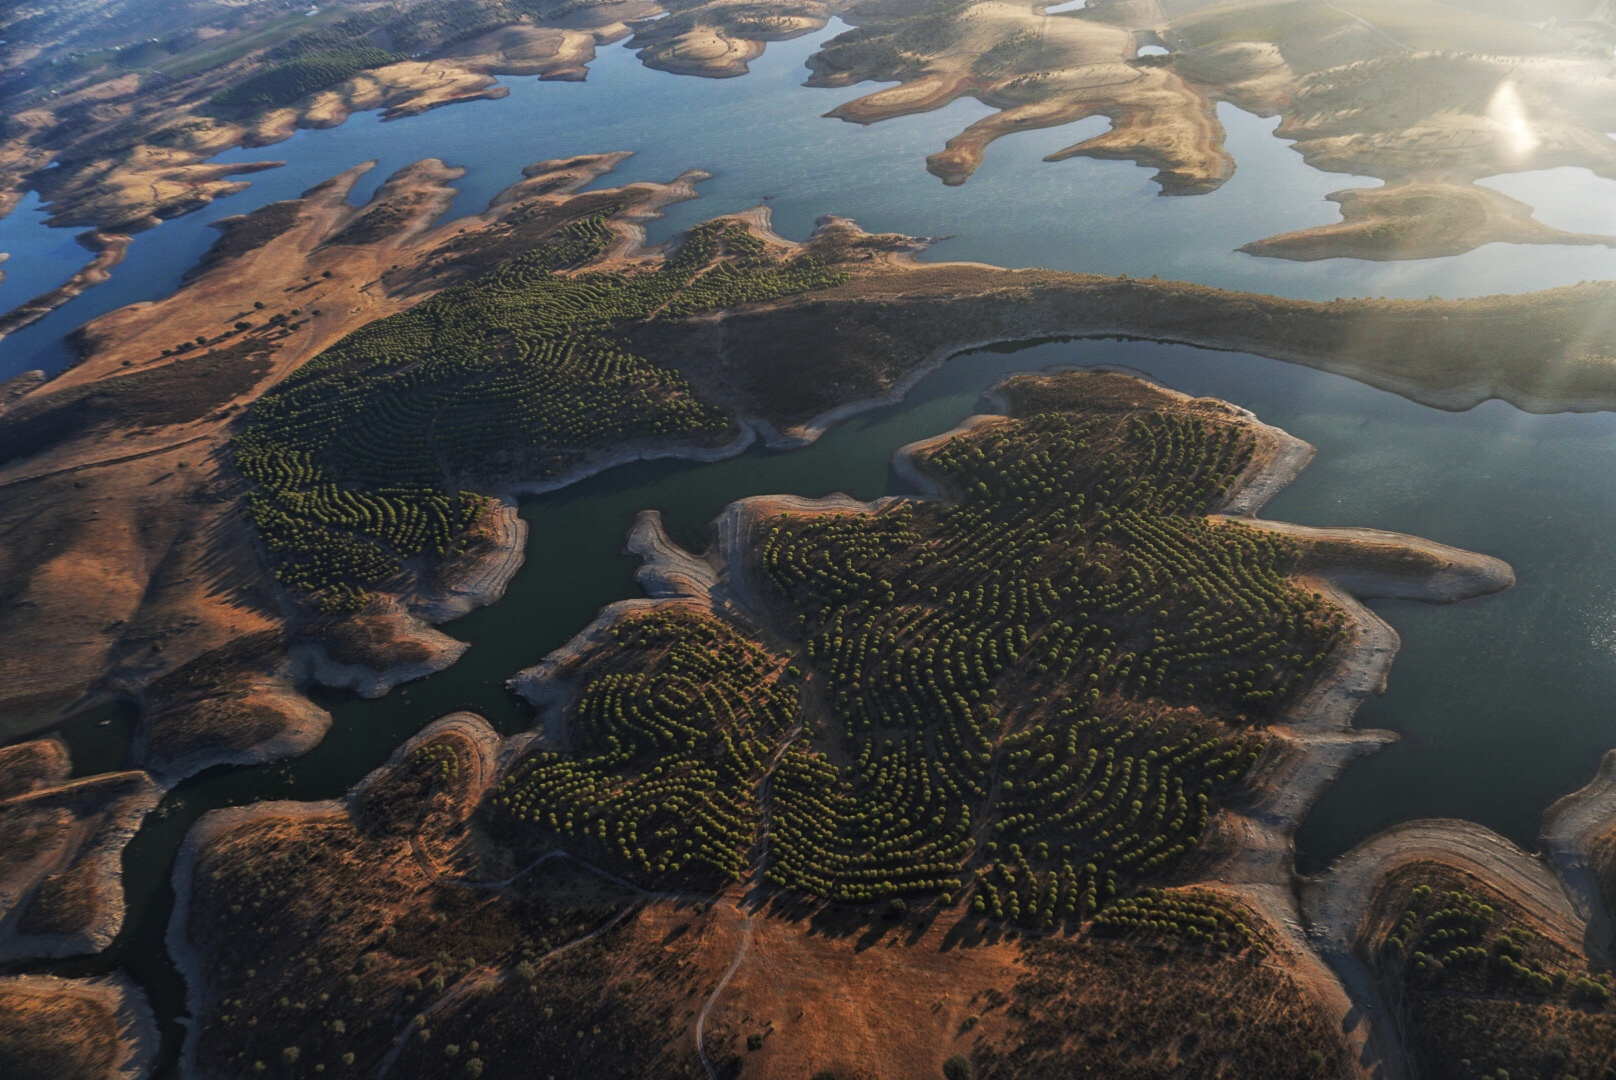 Early morning hot air balloon flight over Alentejo, Portugal